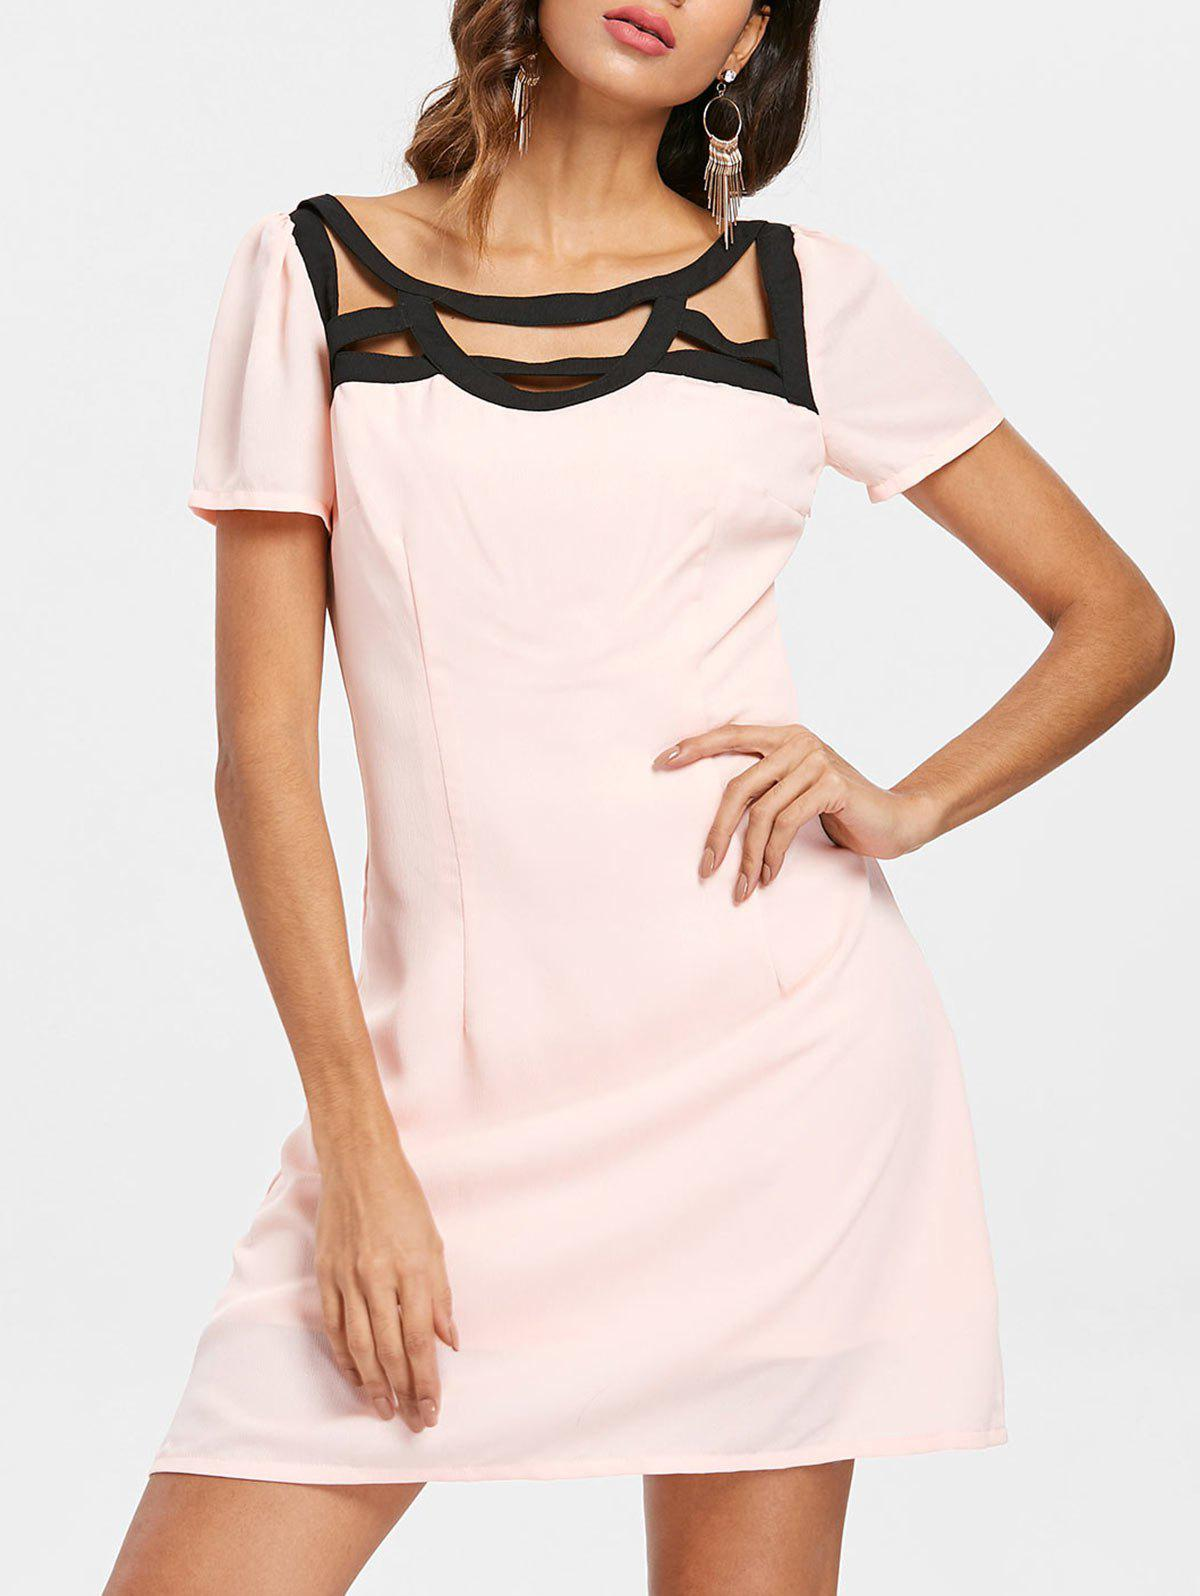 Cage Detail Mini Dress - LIGHT PINK L